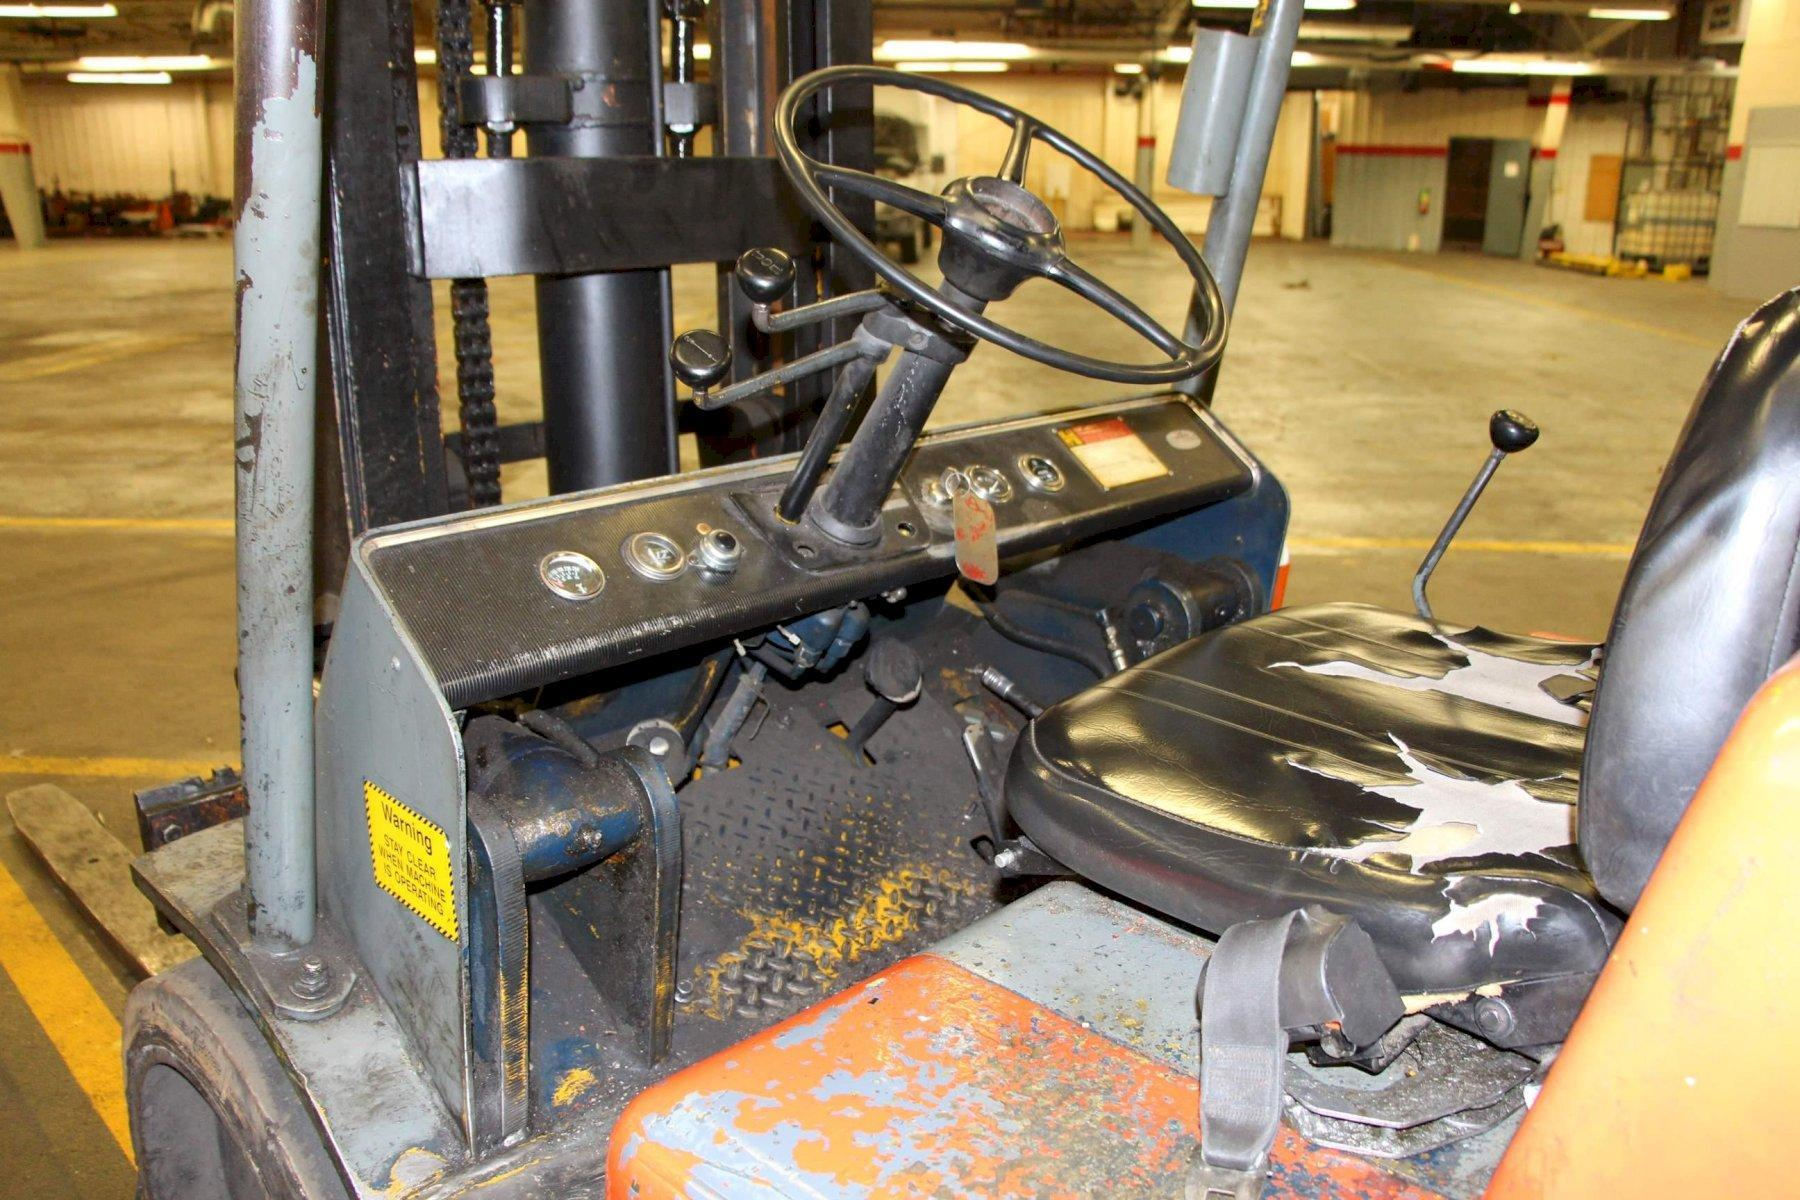 15,000 LBS HYSTER MODEL S150A LPG FORKLIFT: STOCK #69920